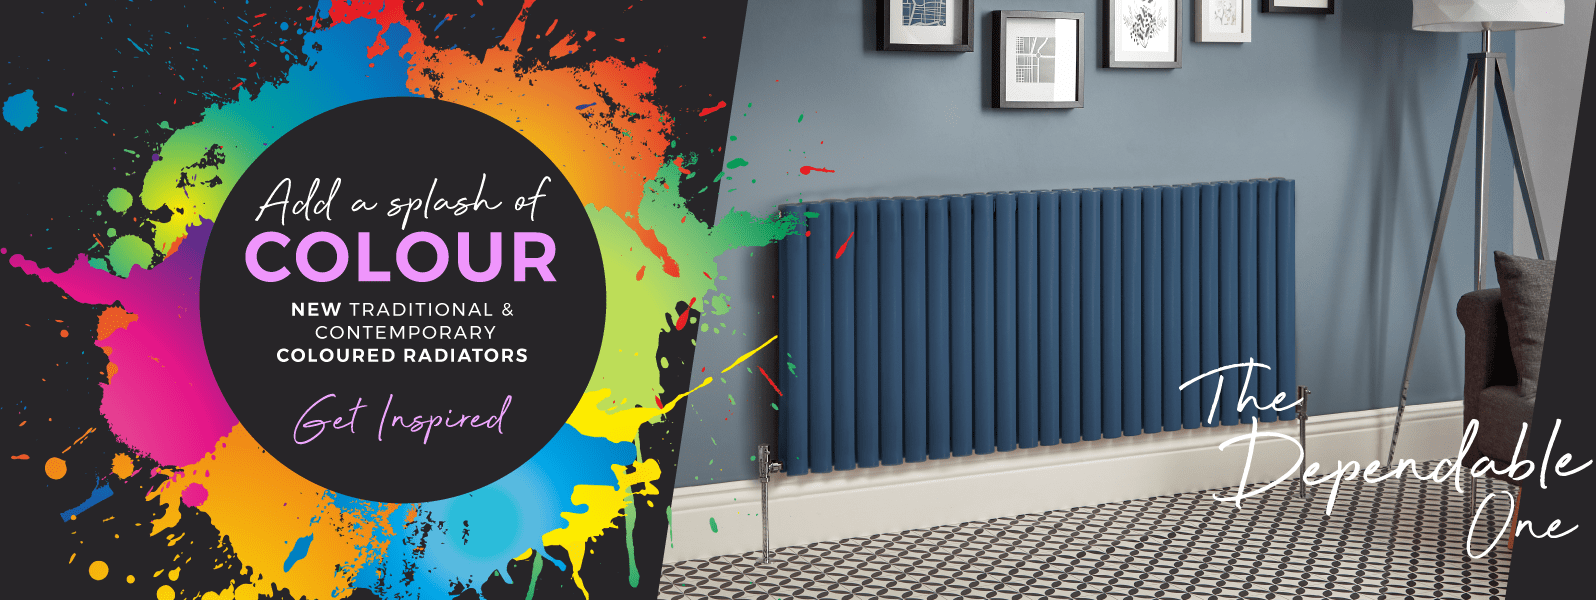 Add A Splash Of COLOUR   NEW Traditional & Contemporary Coloured Radiators   Get Inspired